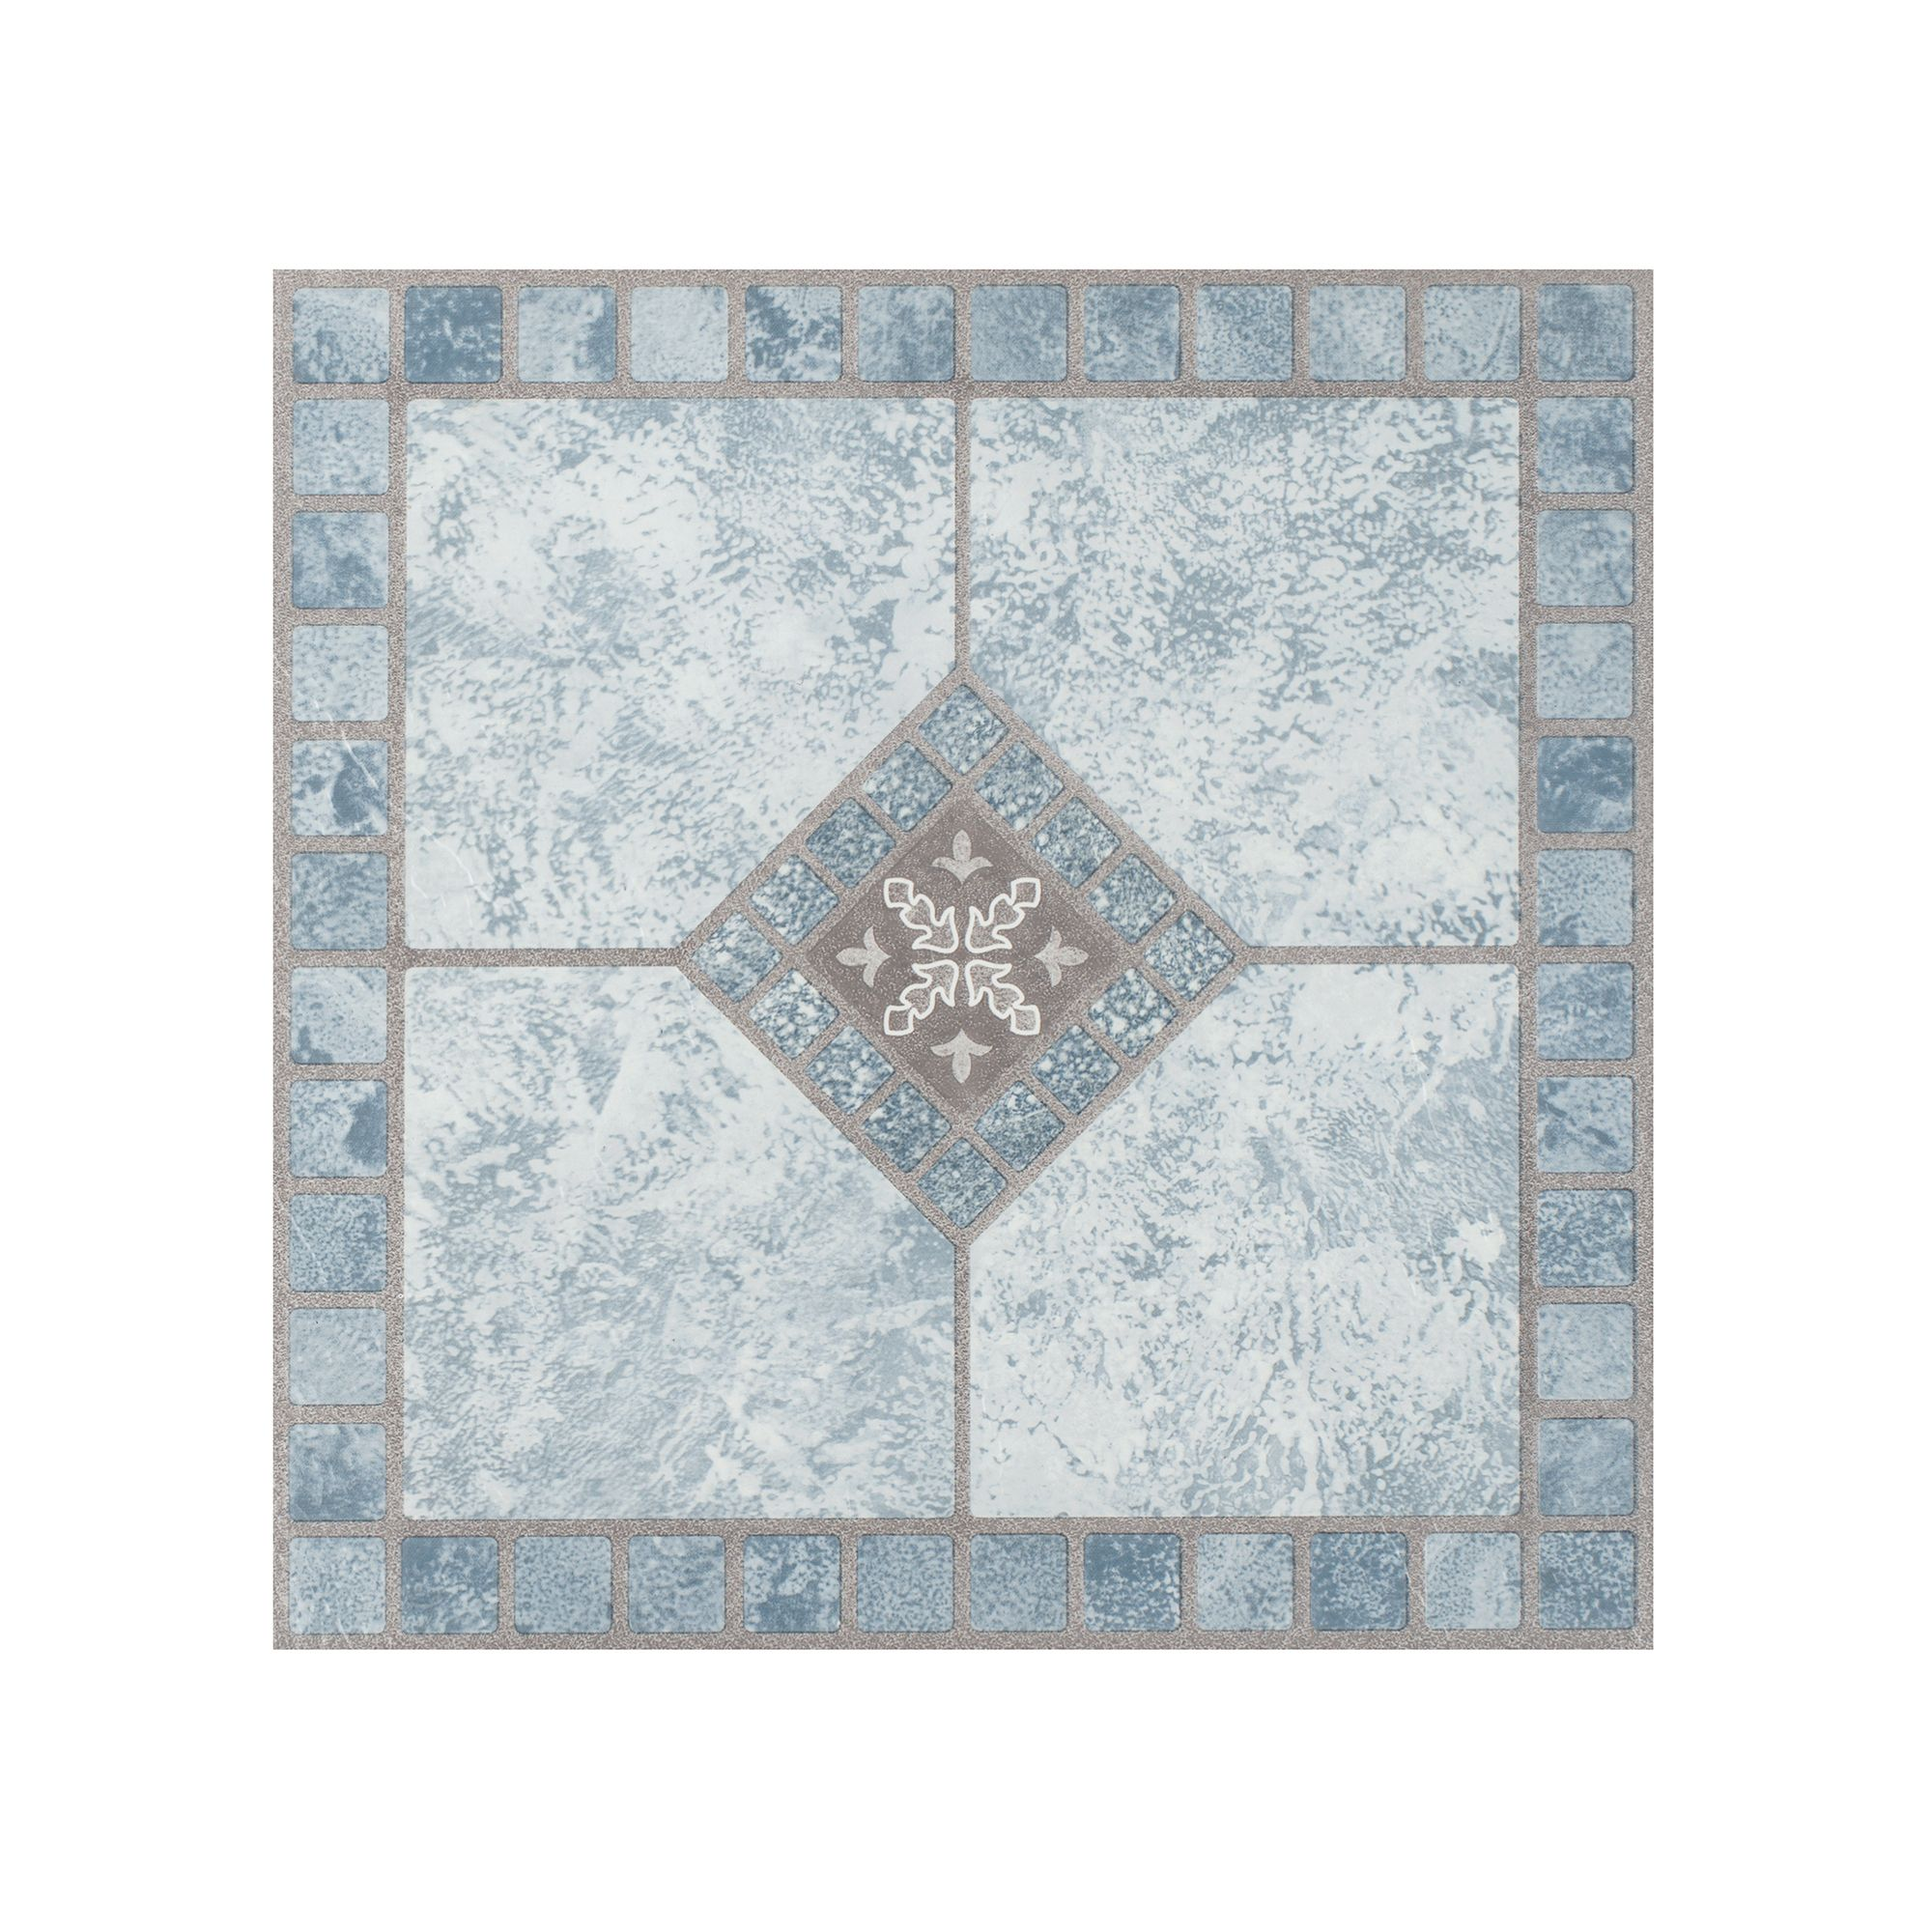 Achim Portfolio 12x12 2 0mm Self Adhesive Vinyl Floor Tile Blue Diamond 9 Tiles 9 Sq Ft Luxury Vinyl Tile Vinyl Tile Luxury Vinyl